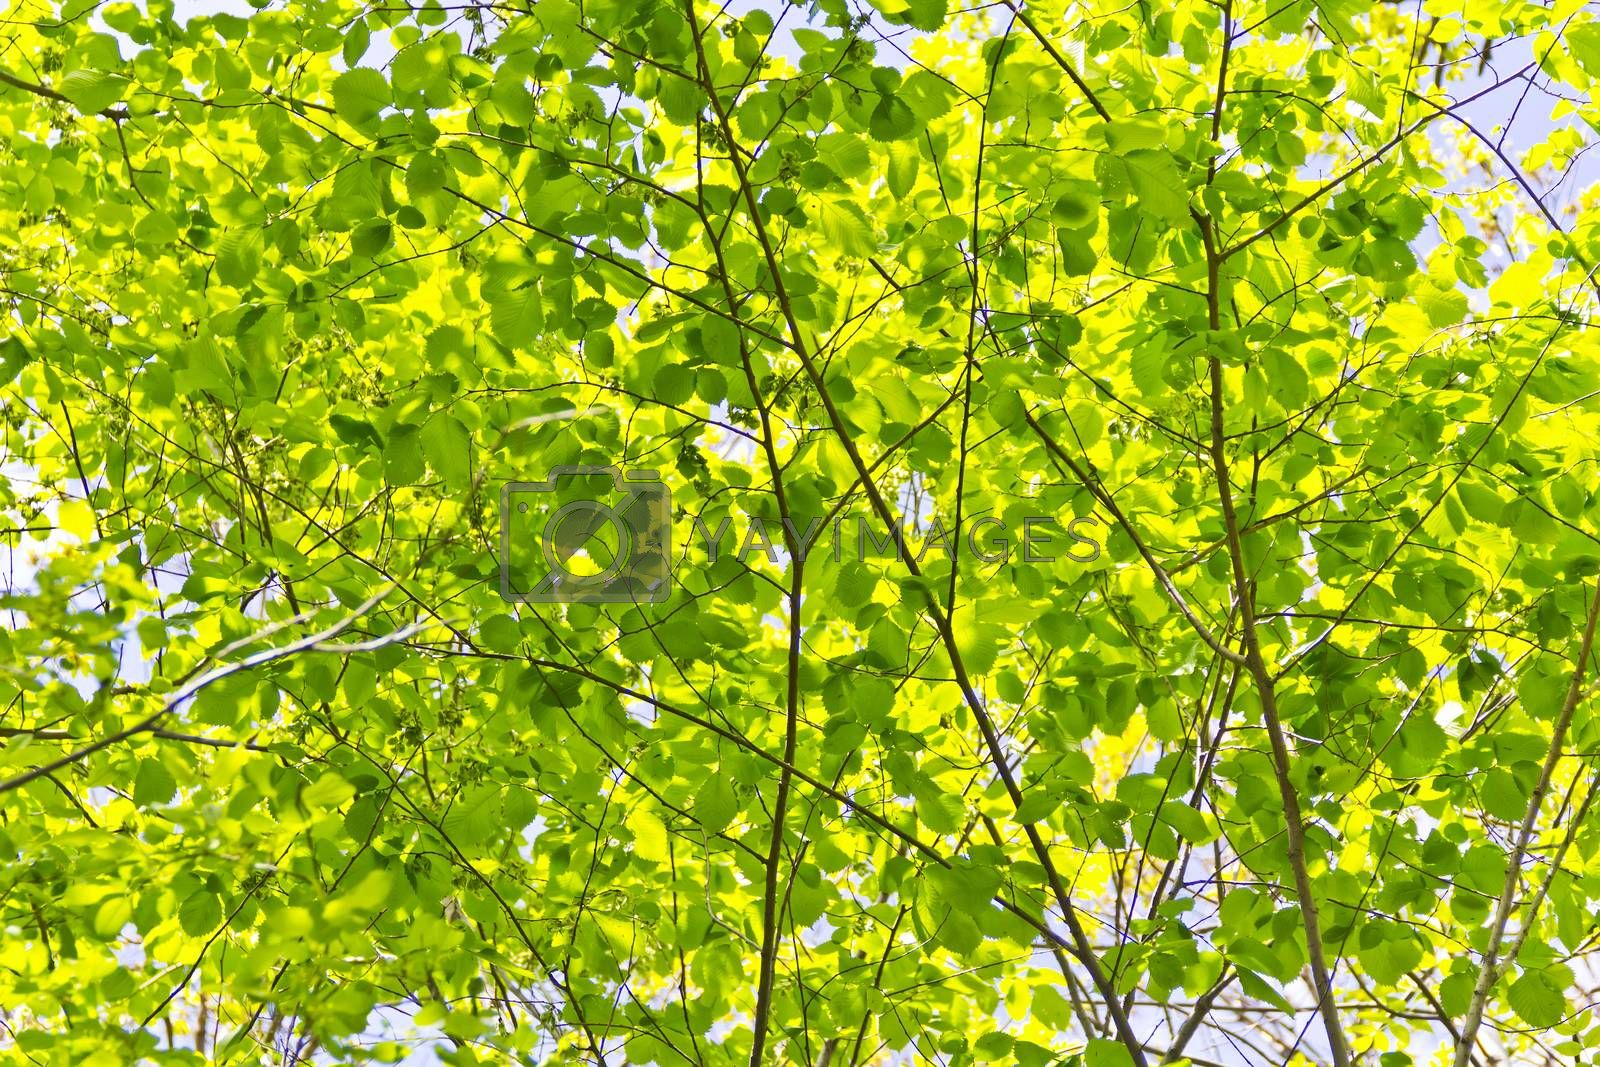 Green foliage with sun light in summer day